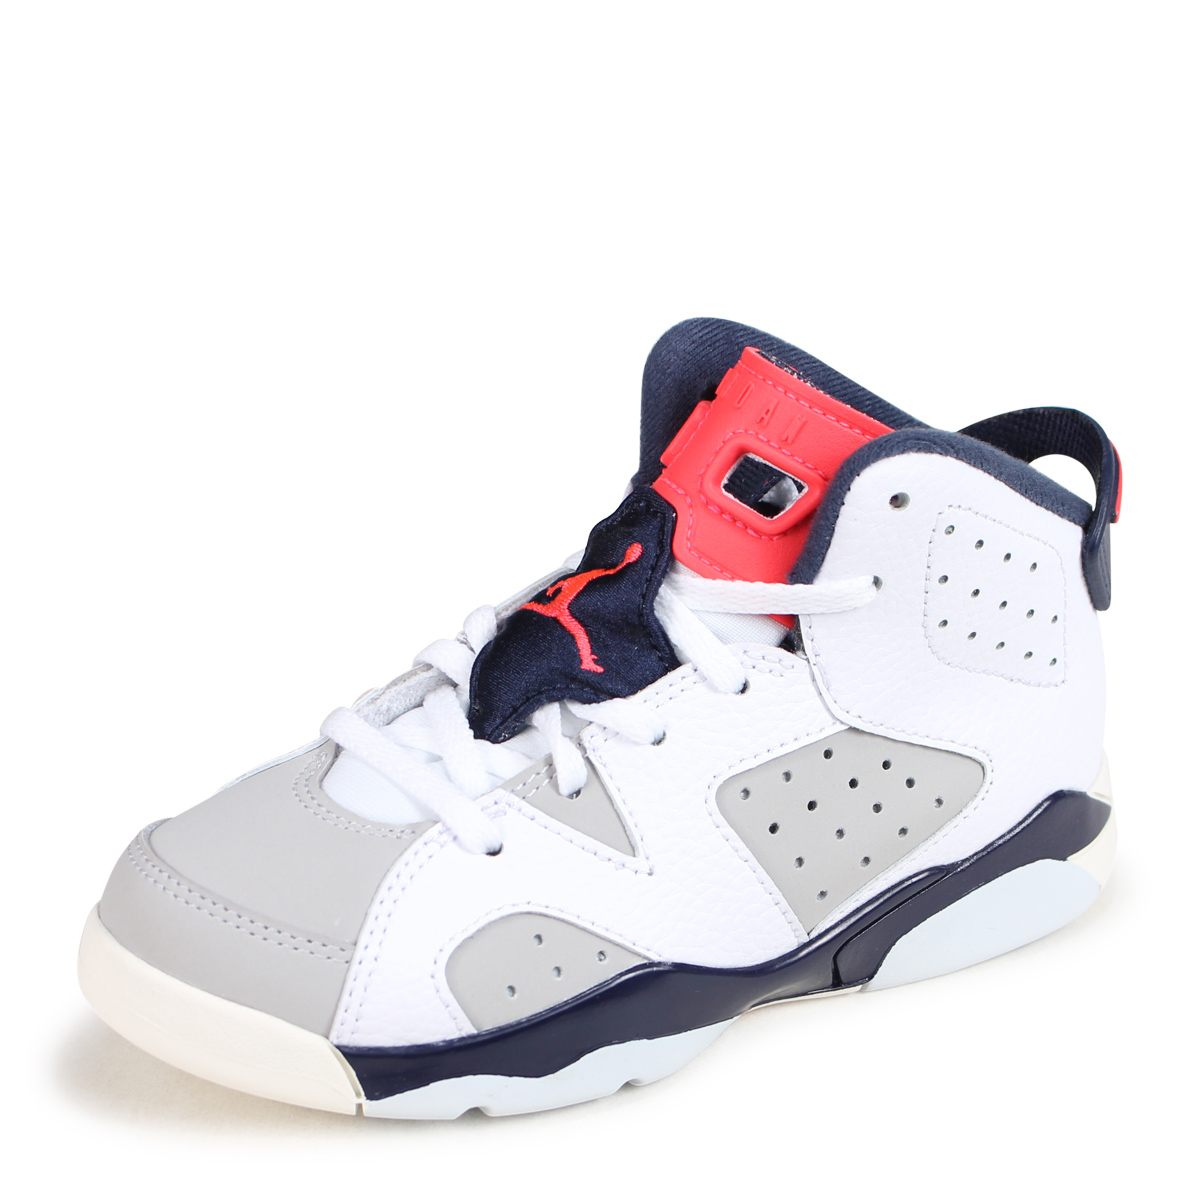 separation shoes 6b017 9a399 NIKE AIR JORDAN 6 RETRO PS TINKER Nike Air Jordan 6 nostalgic kids sneakers  384,666-104 white  load planned Shinnyu load in reservation product 10 22  ...